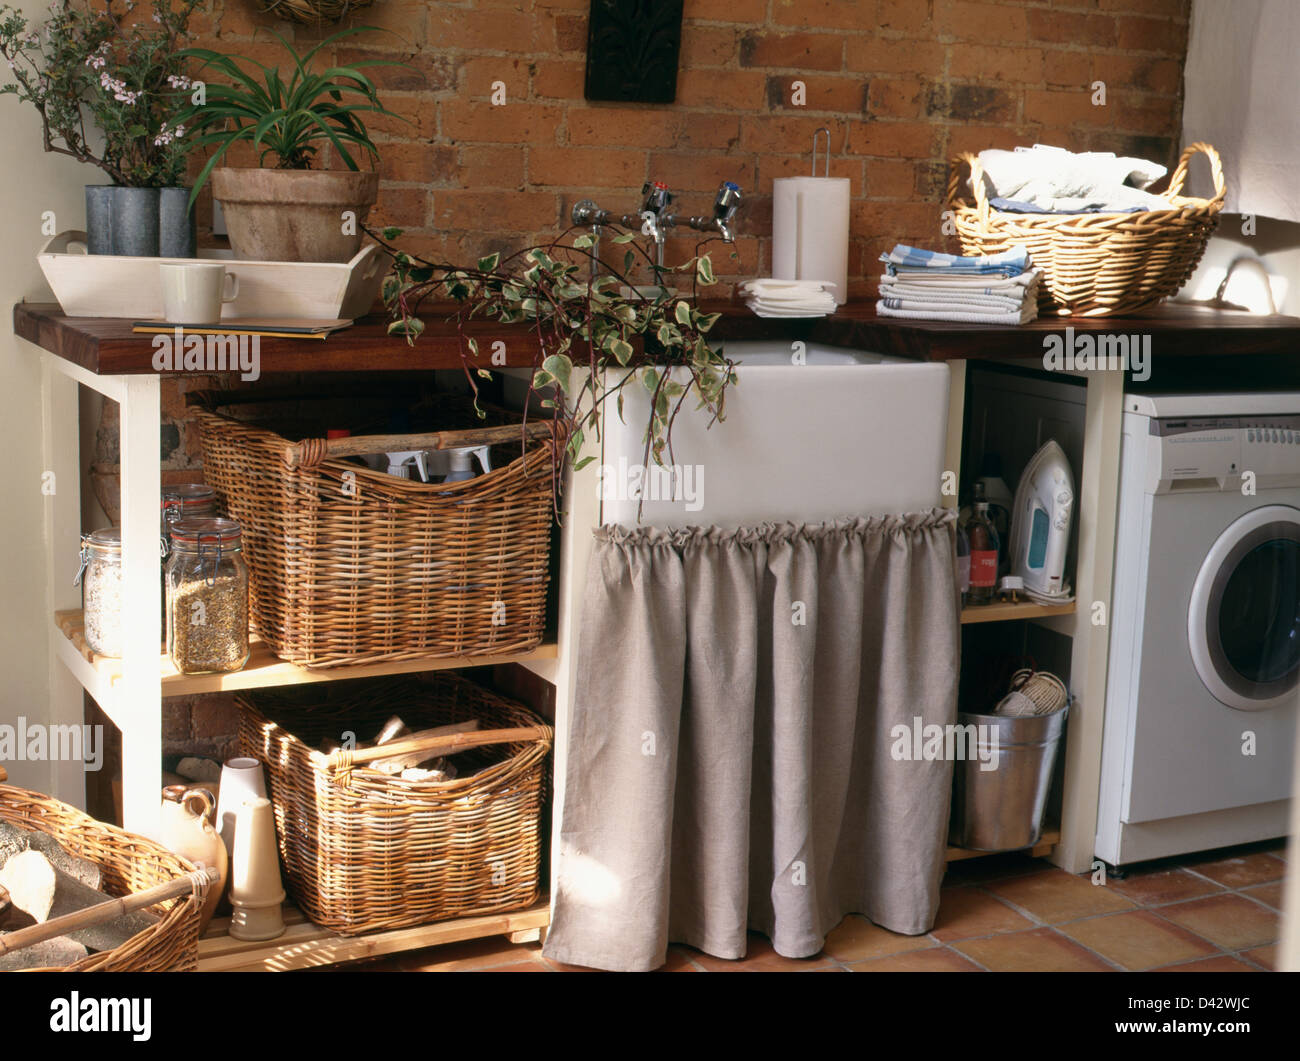 Superbe Storage Baskets On Shelf Unit Beside Belfast Sink In Unit With Gray Curtain  In Rustic Country Utility Room